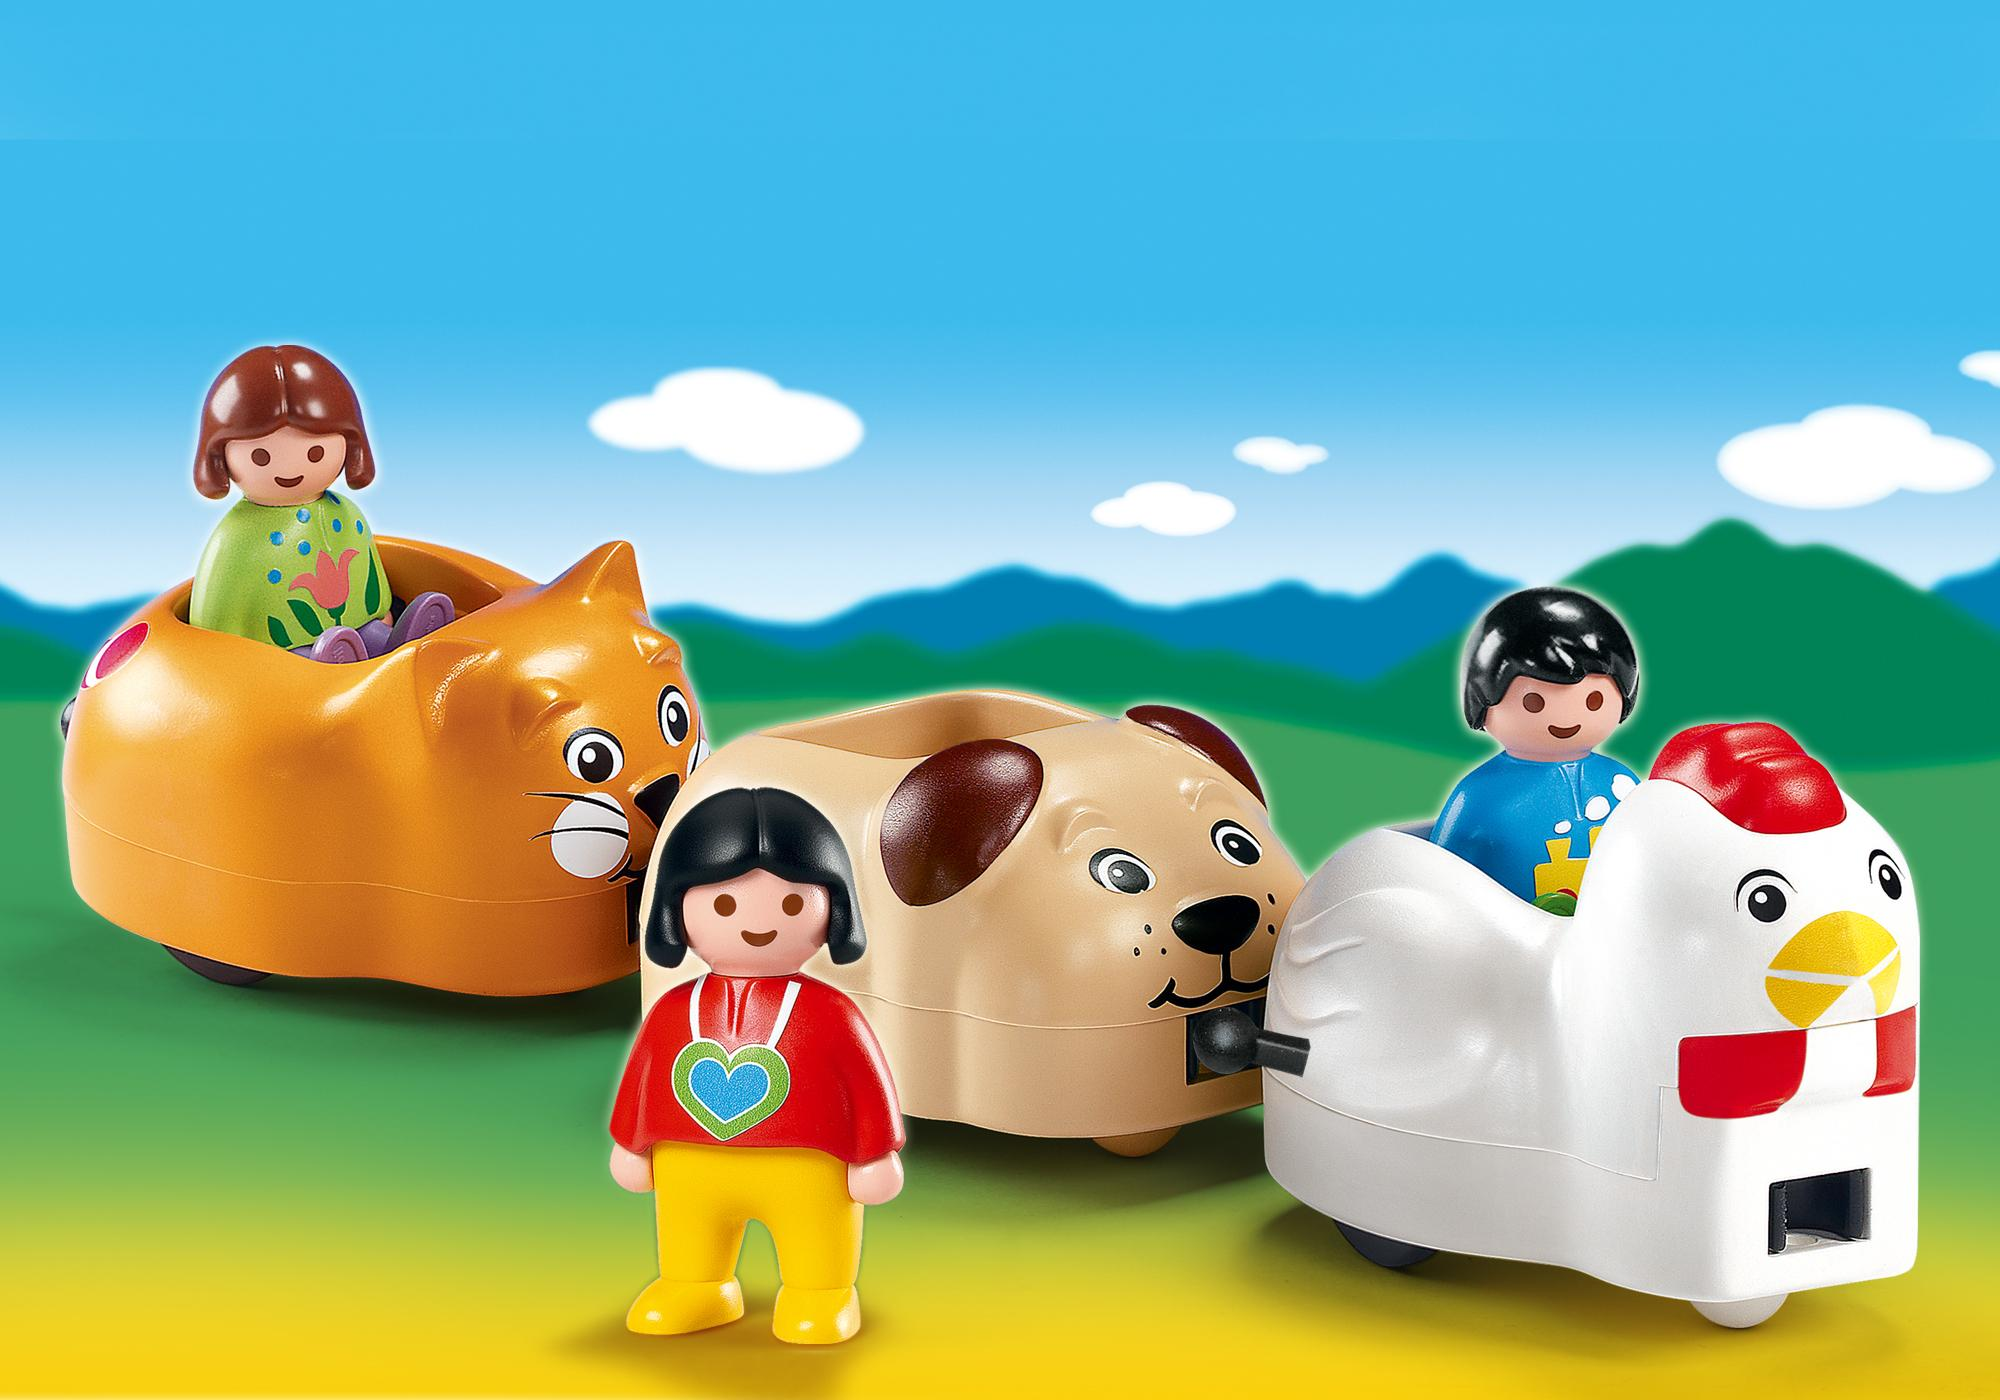 http://media.playmobil.com/i/playmobil/6767-A_product_detail/Fröhlicher Tierchen-Zug